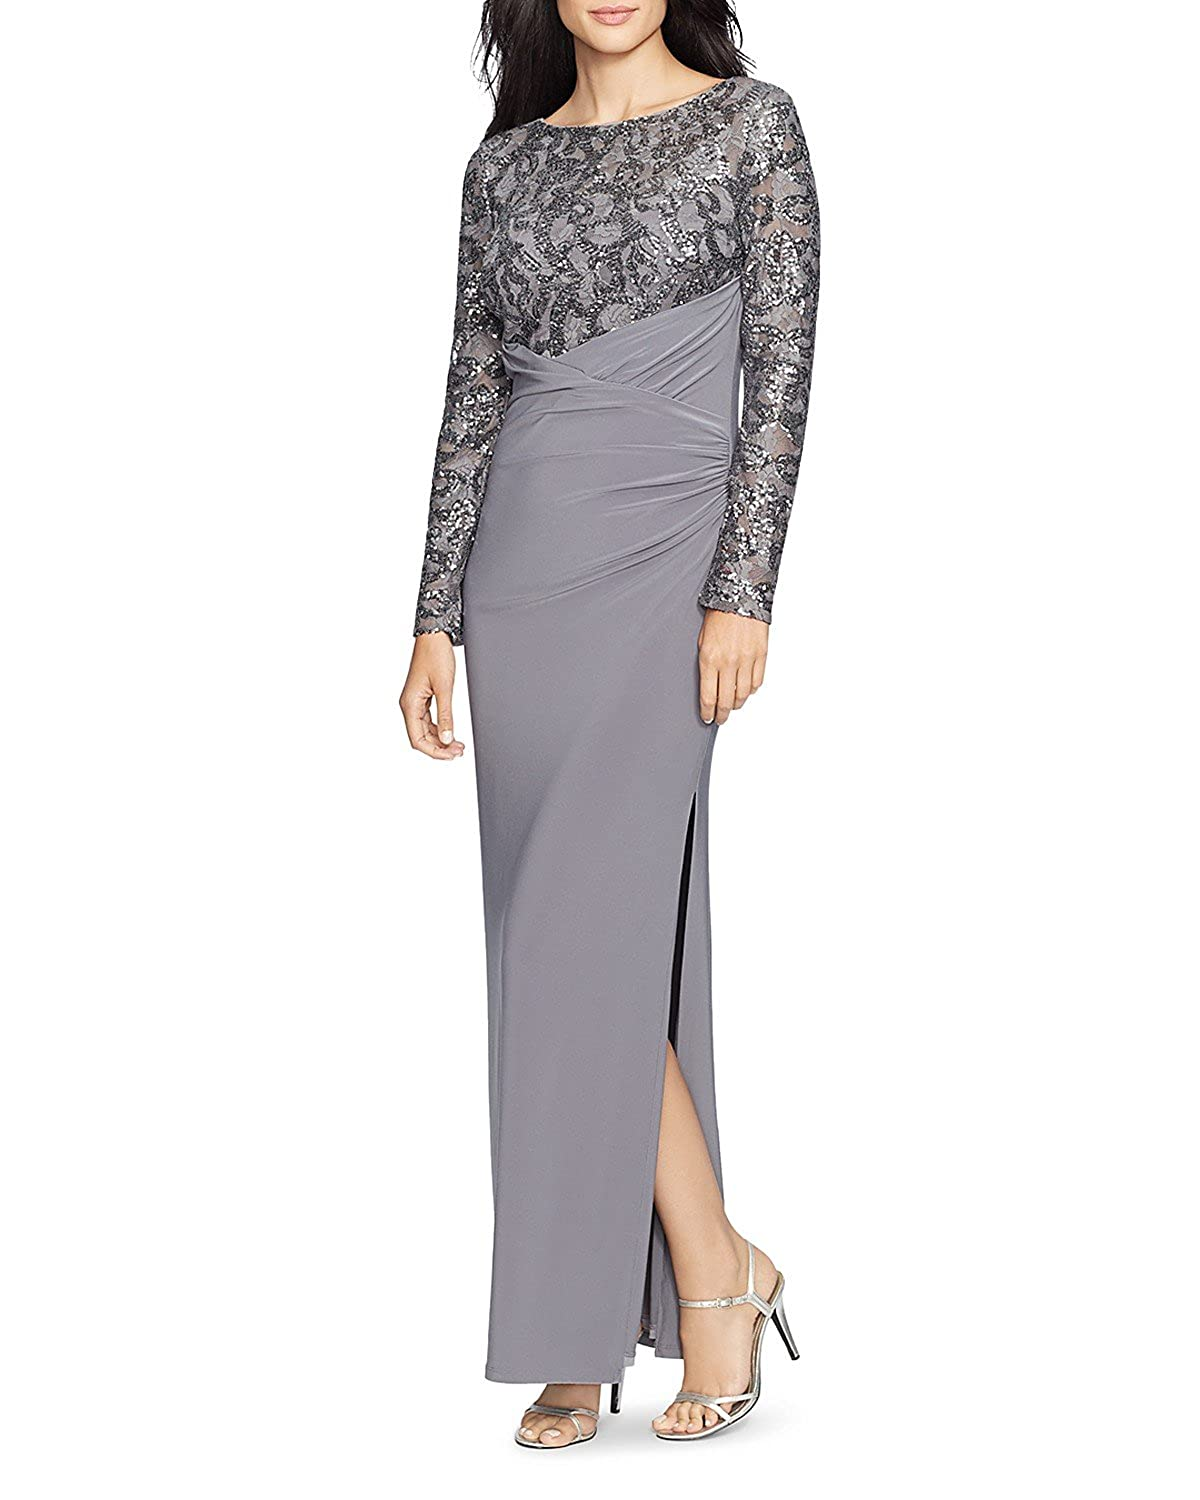 81950e52d0423 Lauren Ralph Lauren Women's Sequin Lace Jersey Gown in Silver/Dark Gray  (10) at Amazon Women's Clothing store: